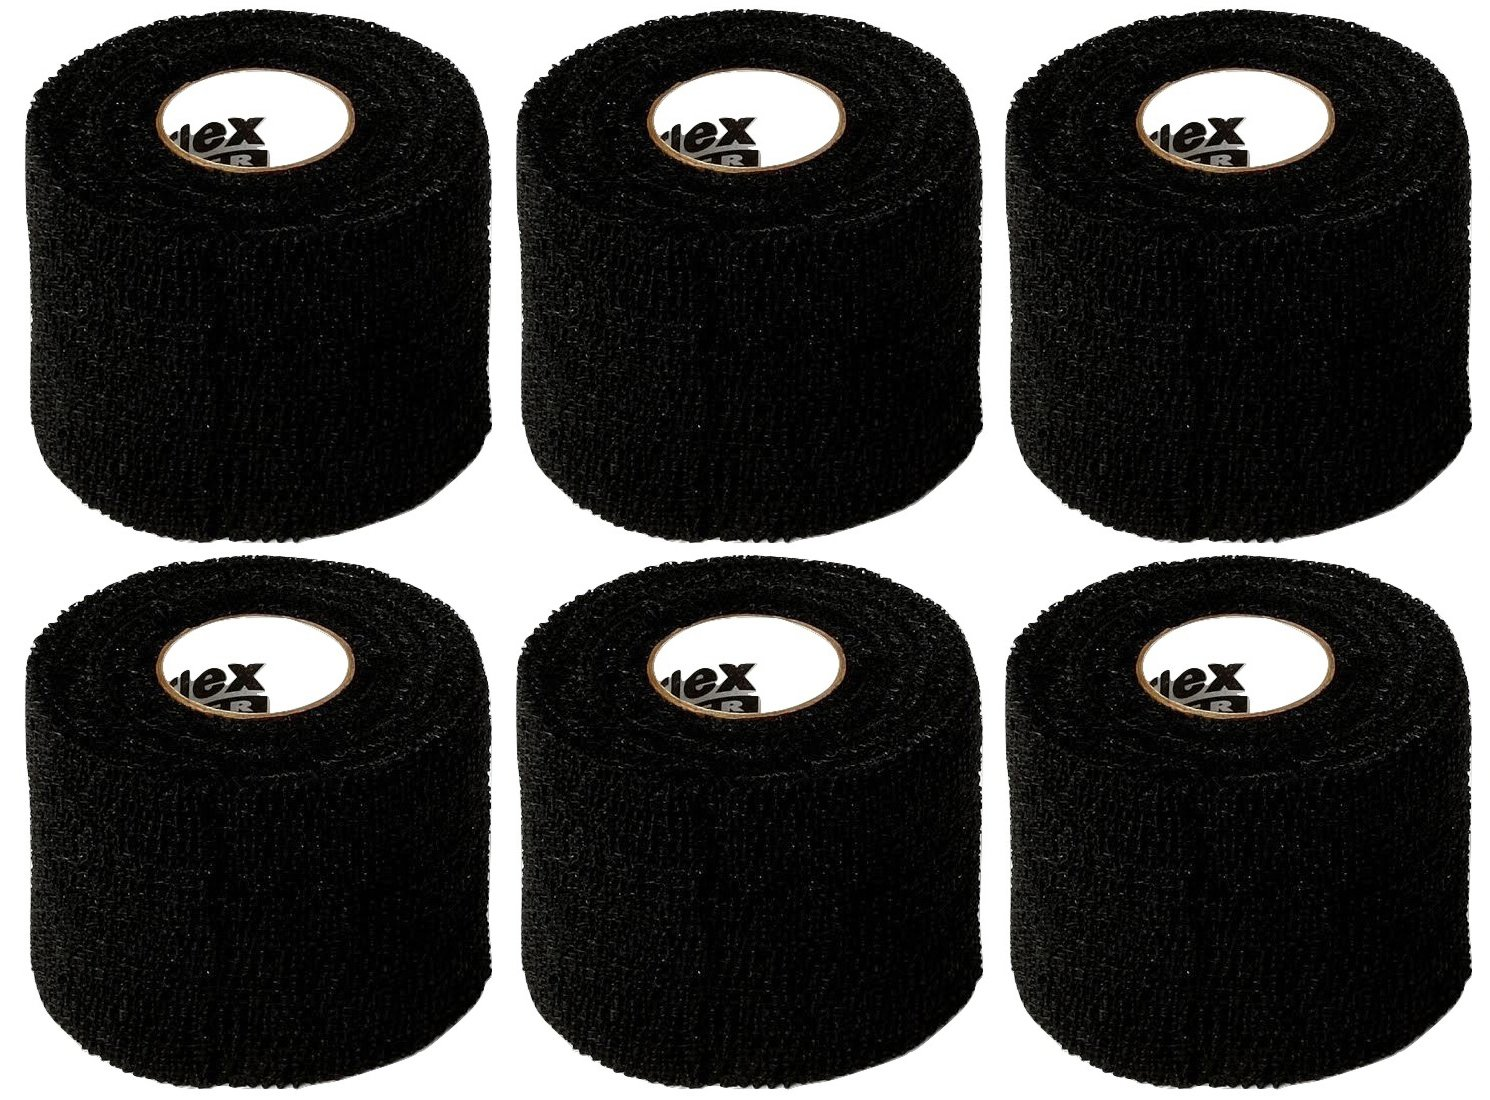 Powerflex 2'' Stretch Athletic Tape - 6 Rolls, Black